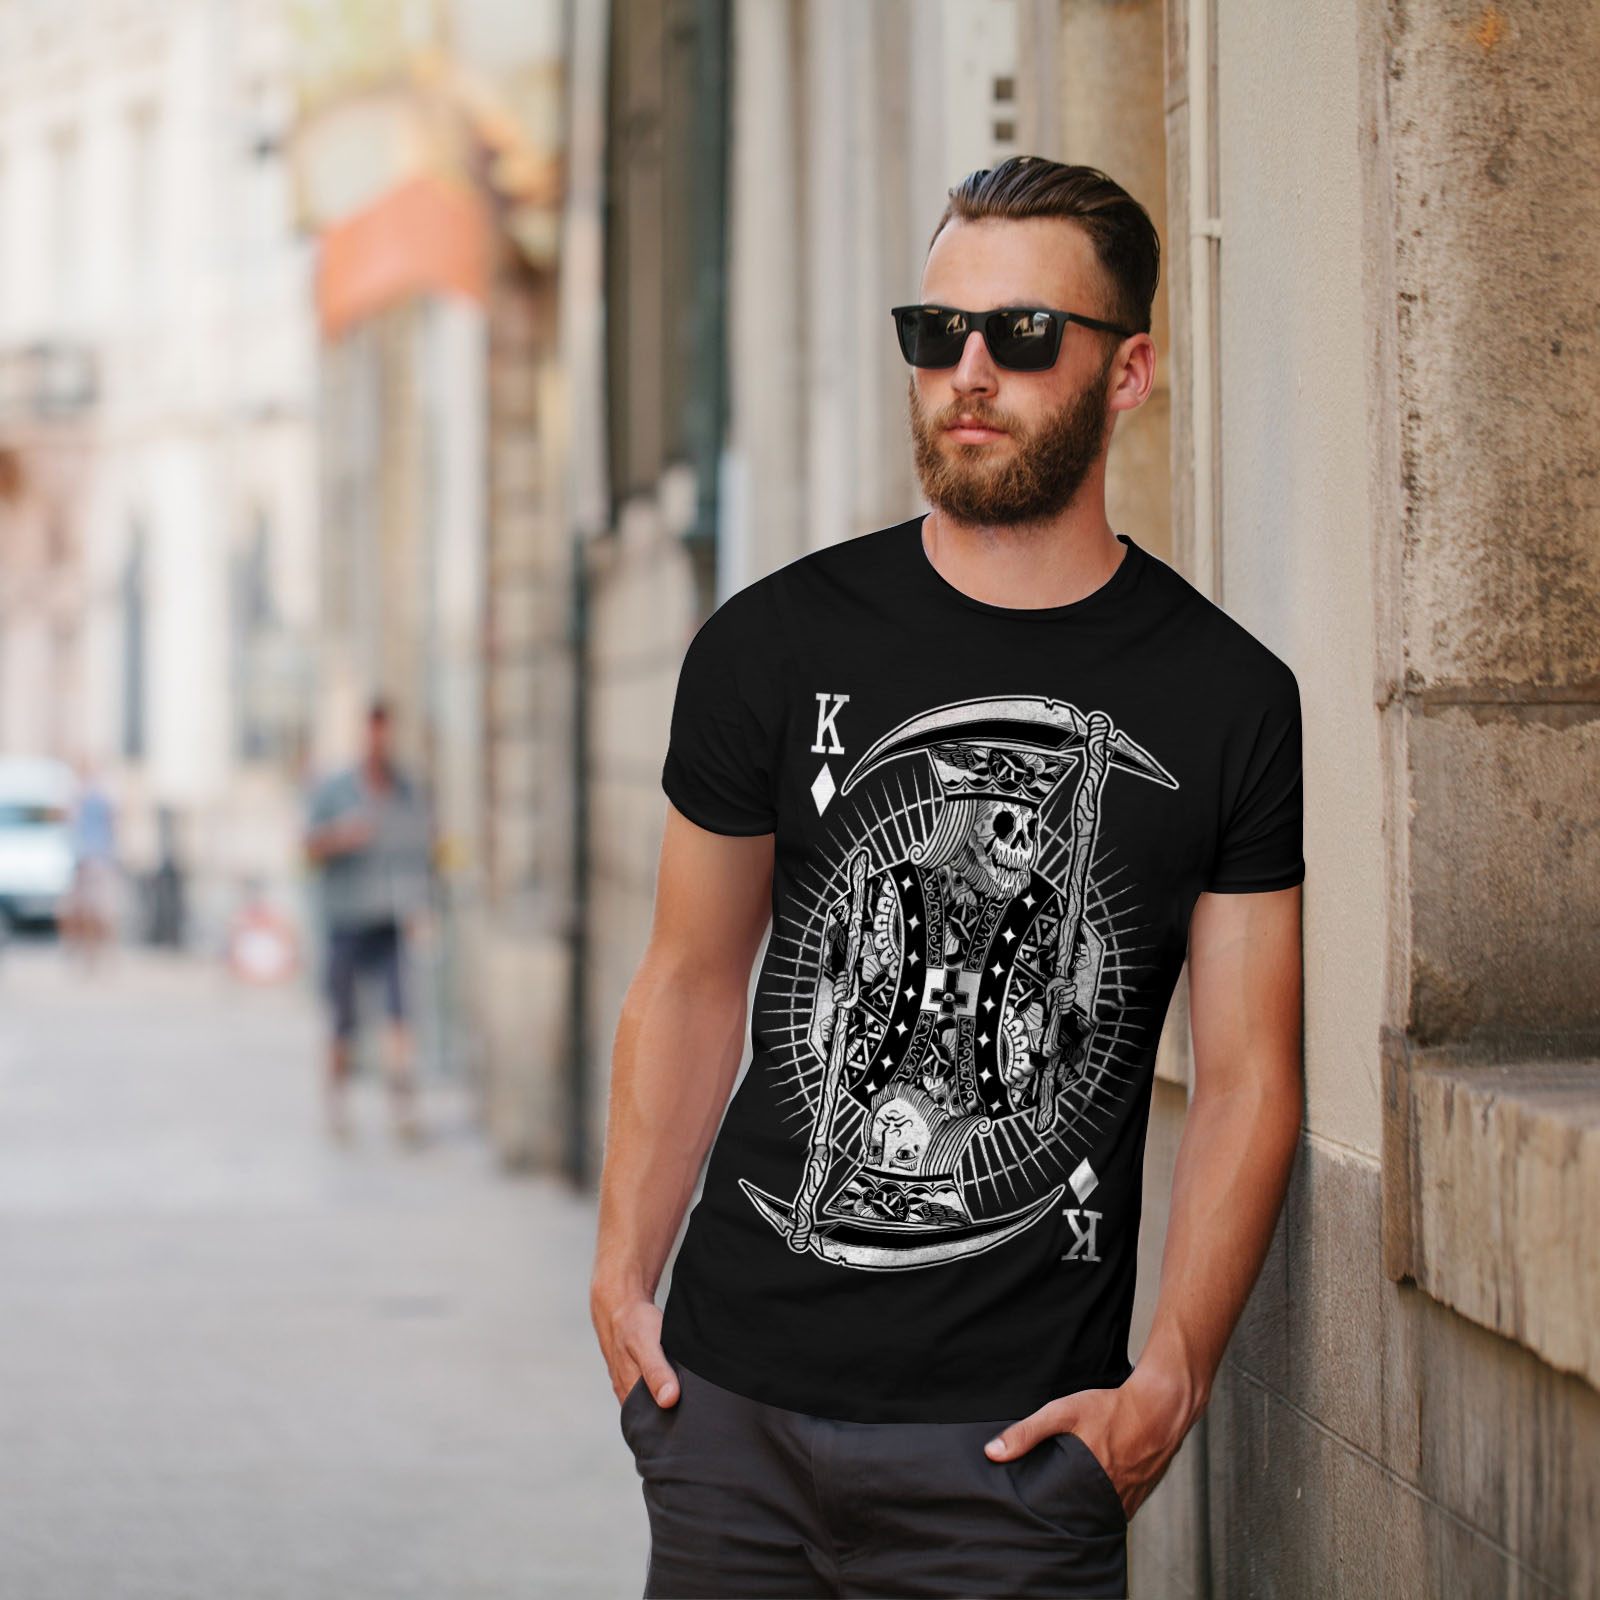 Wellcoda-Poker-Horror-King-Skull-Mens-T-shirt-Graphic-Design-Printed-Tee thumbnail 5